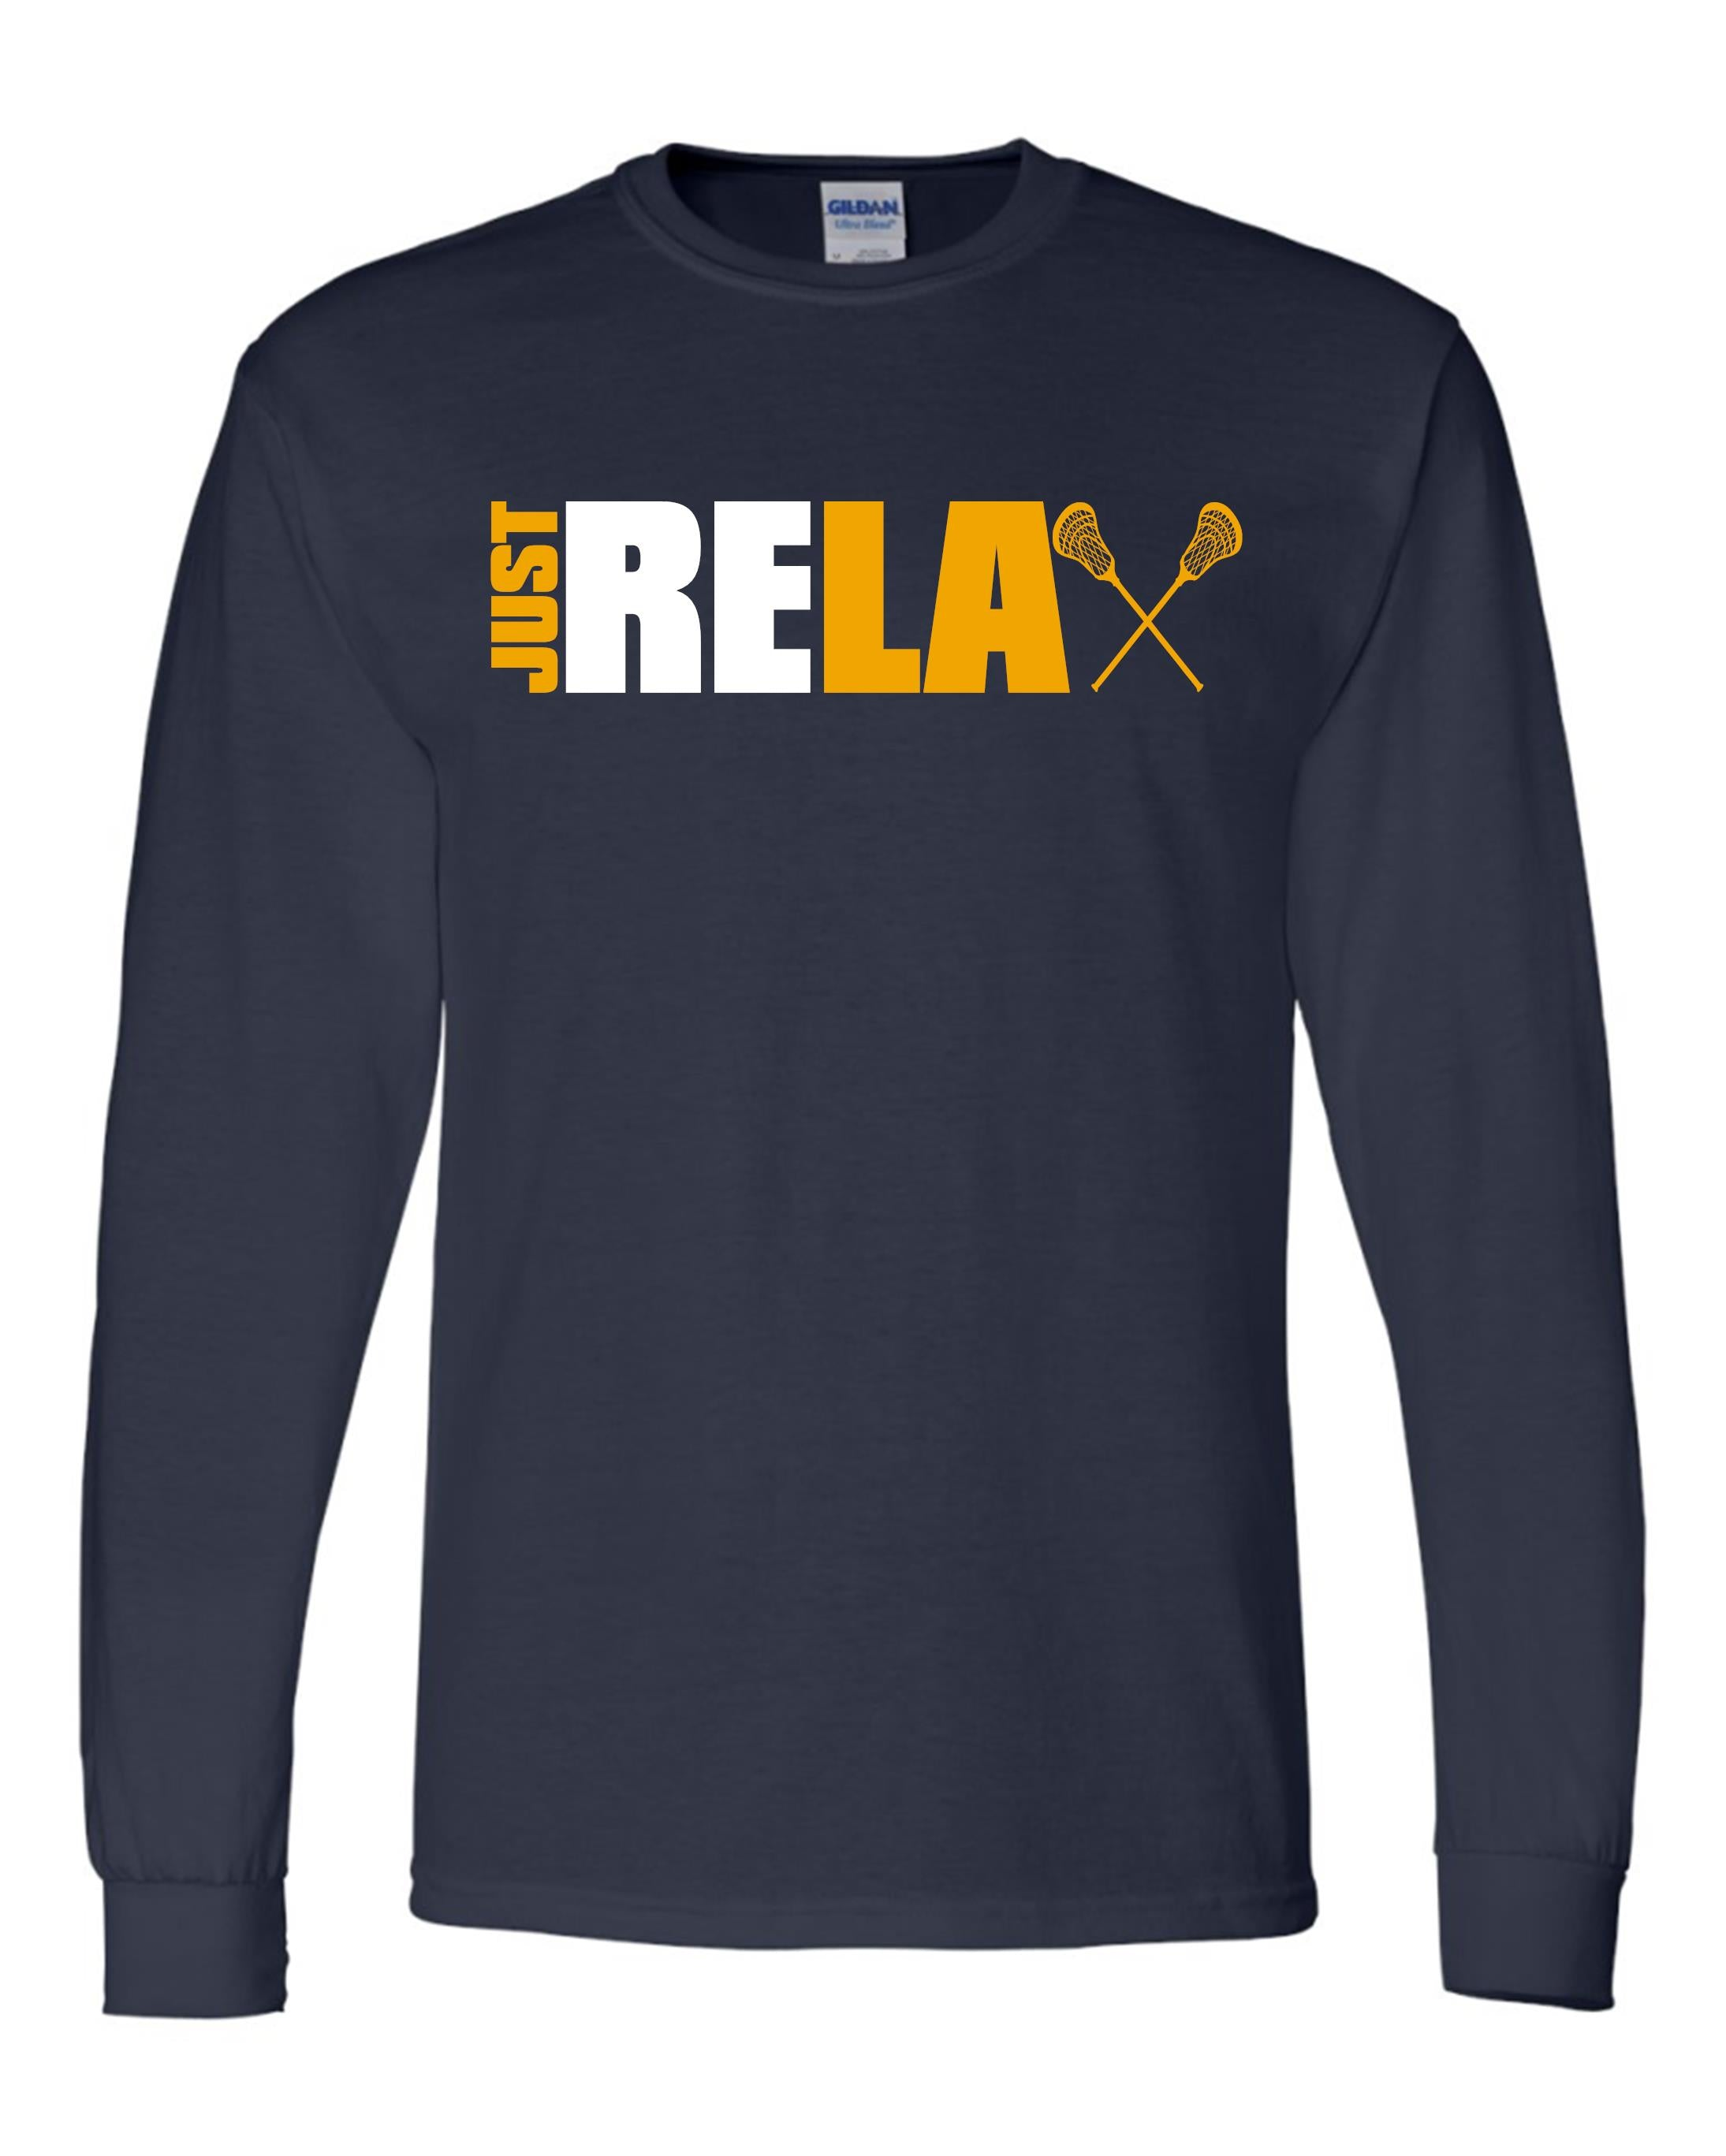 Just Relax Lacrosse Long Sleeve Shirt